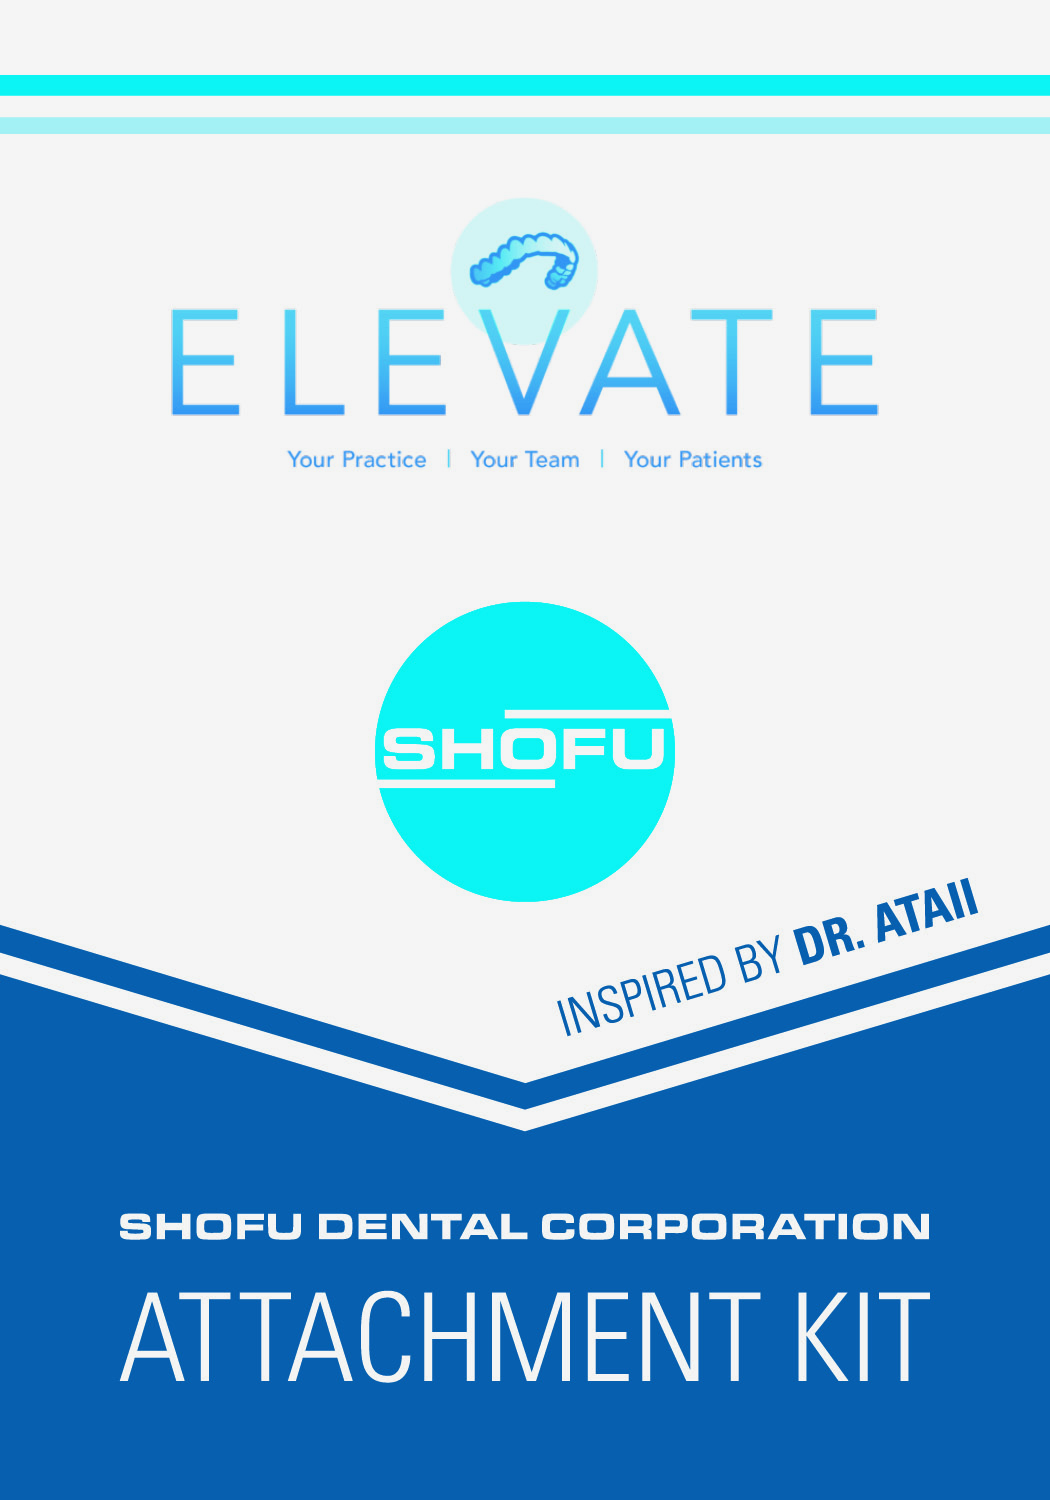 Label created for Dr. Ataii's Attachment Kit